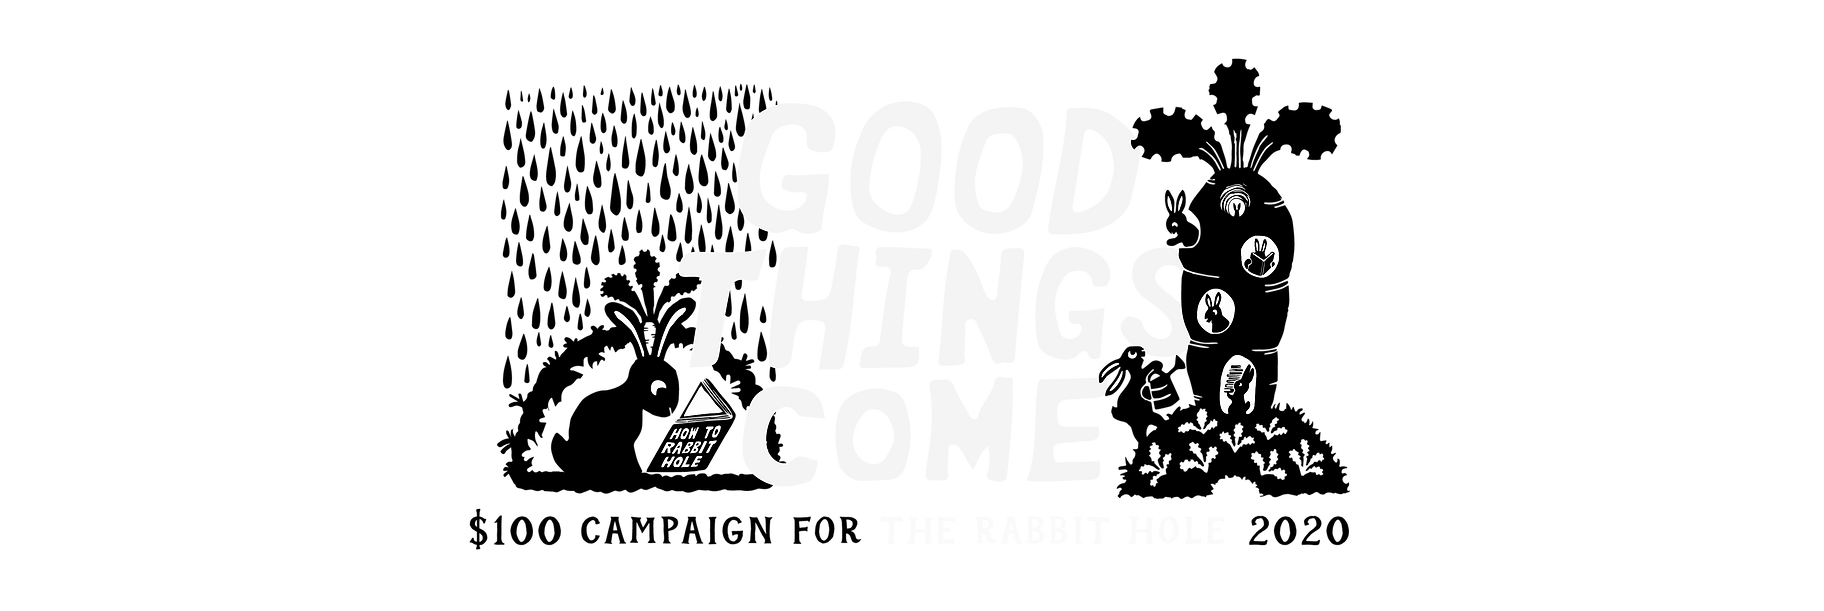 good things come-02.png